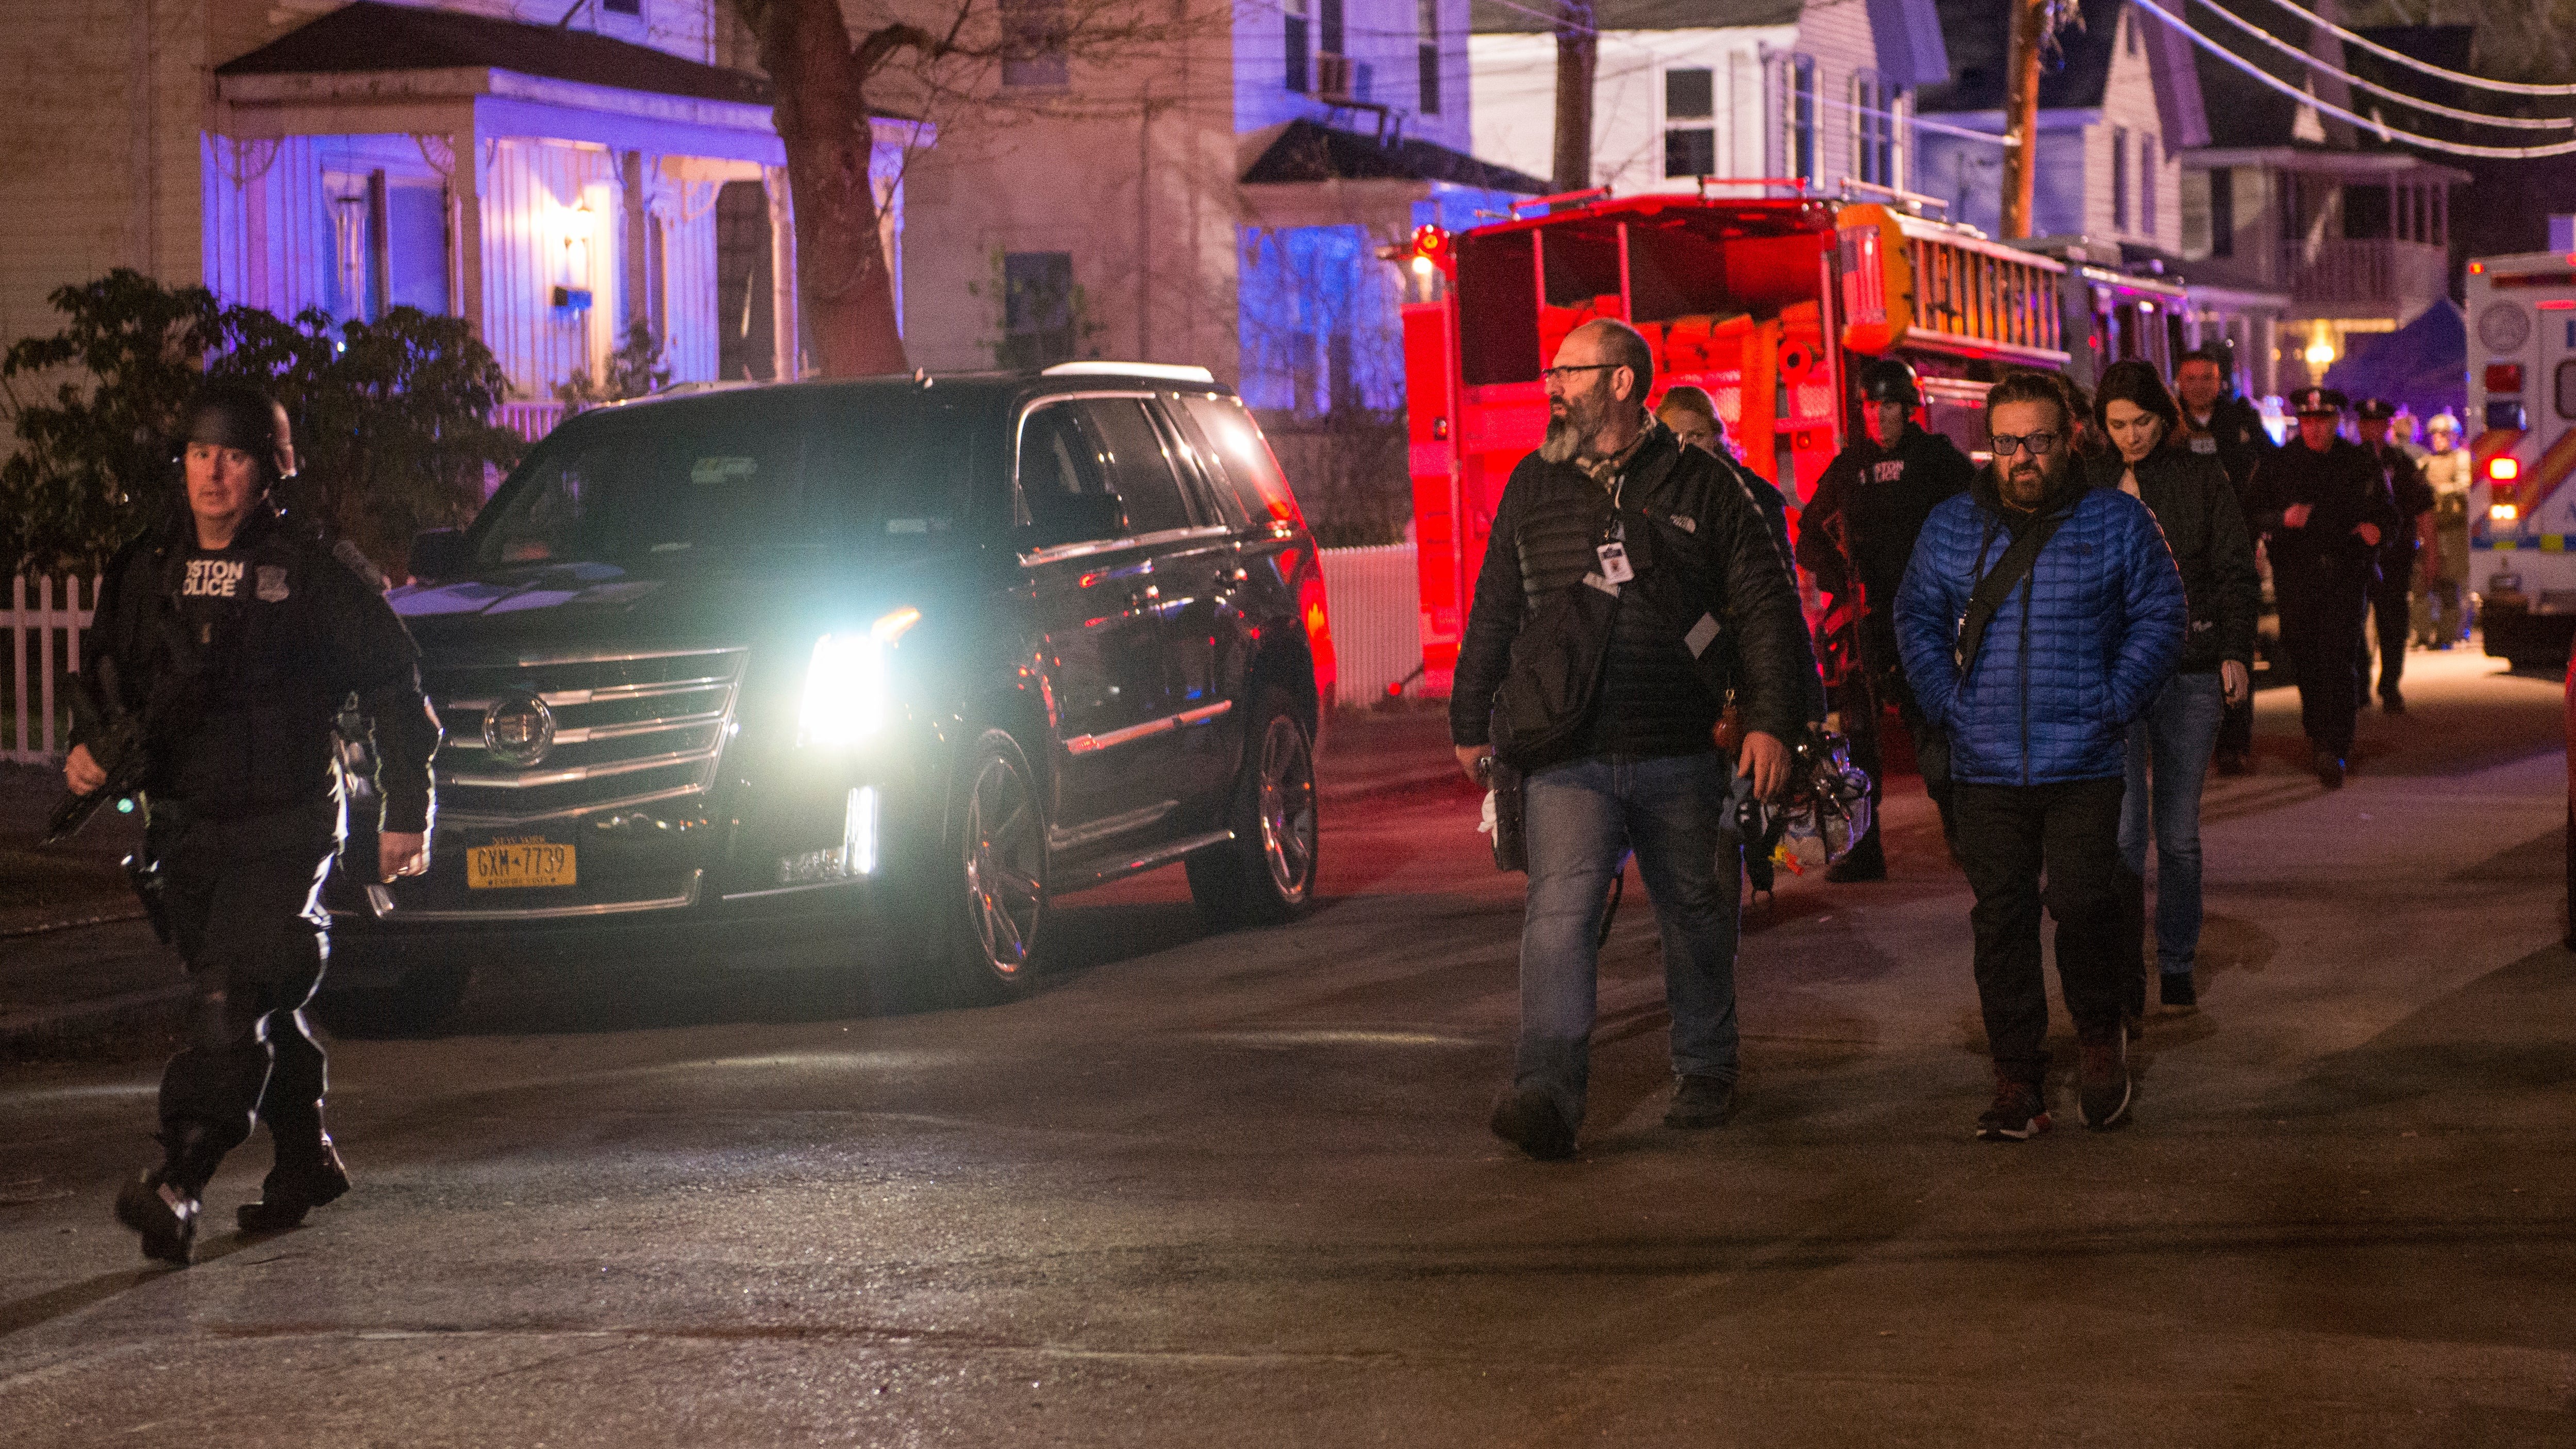 Patriots Day cast and crew leave the set after wrapping up filming for the third and final night on Harrison Street in Framingham early in the morning on April 22, 2016. Photo by Jim Tuttle